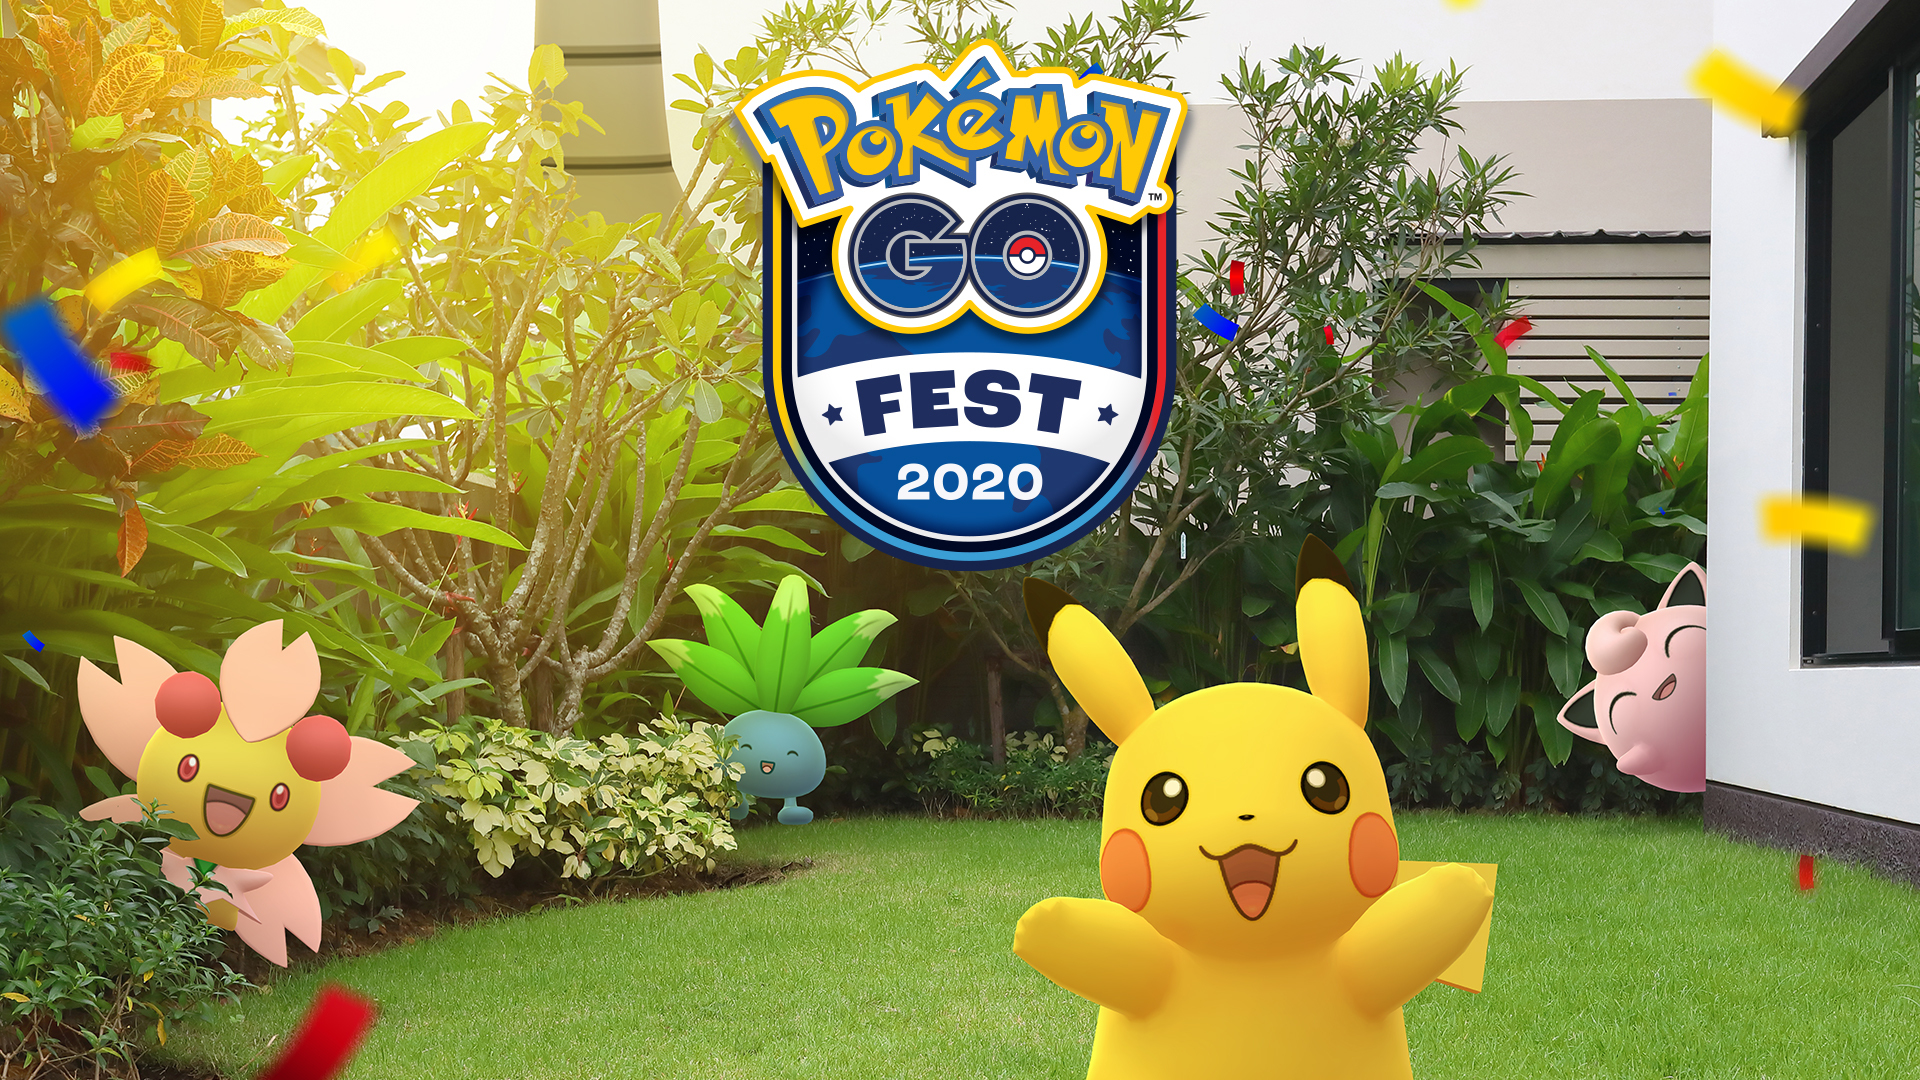 Pokémon GO fest 2020 key art